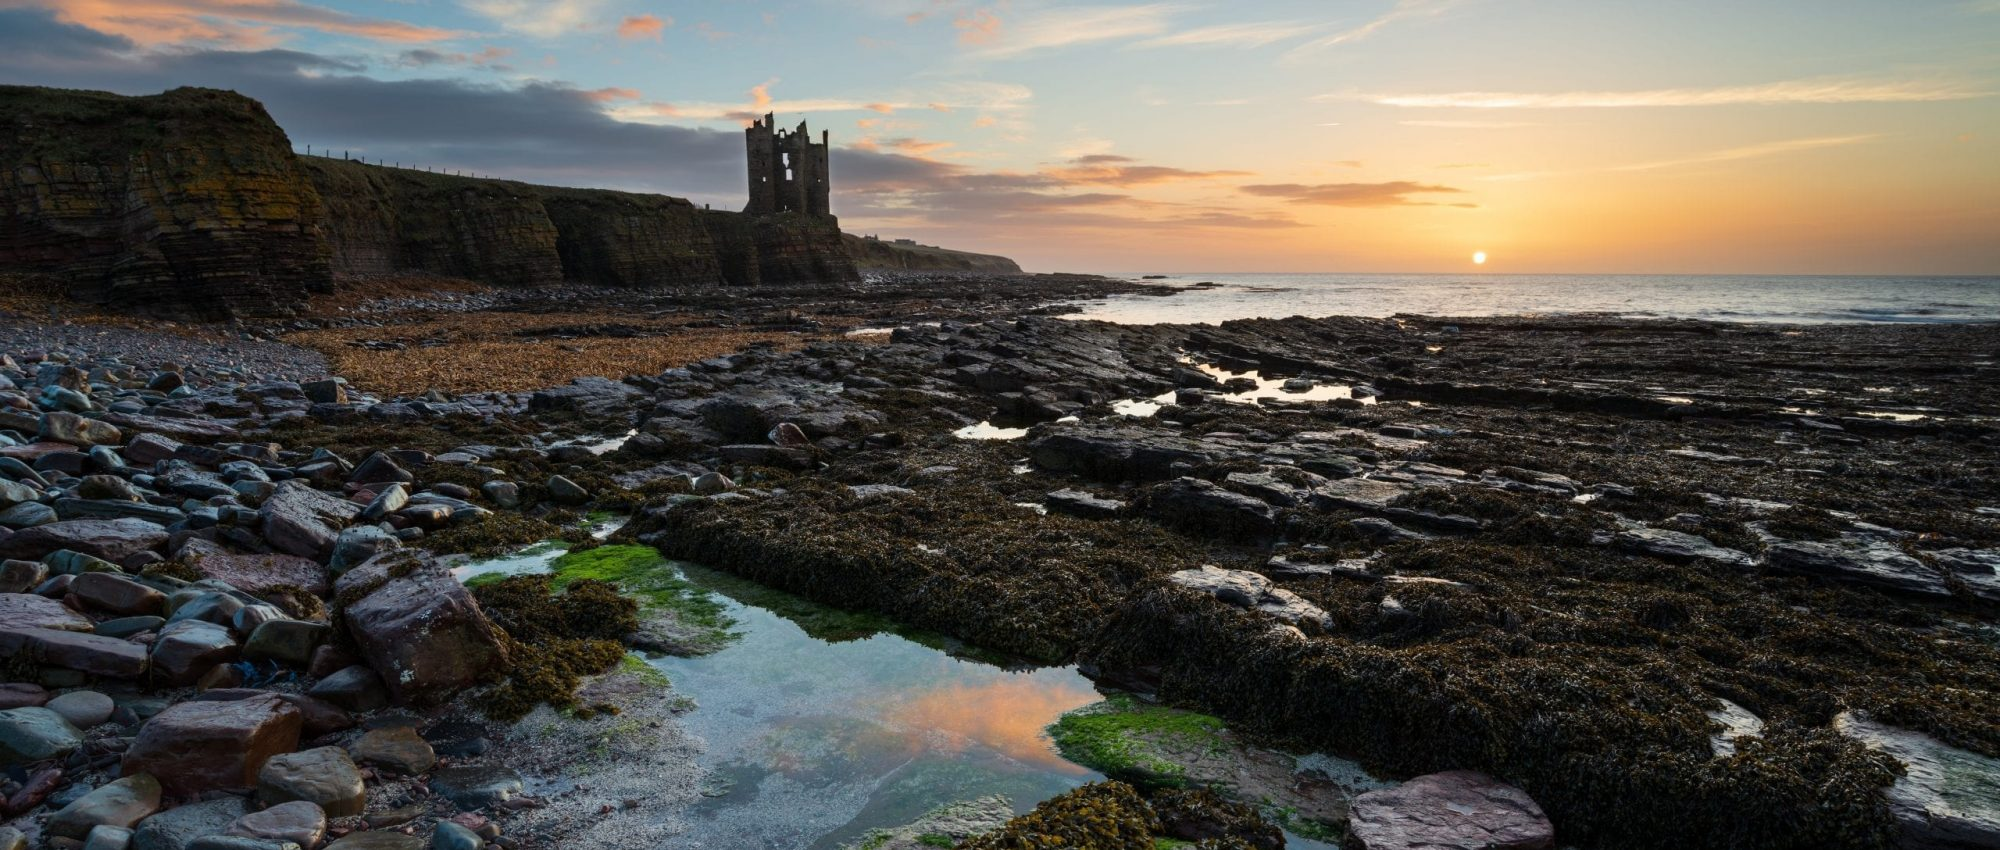 Keiss Castle at Caithness in Scotland